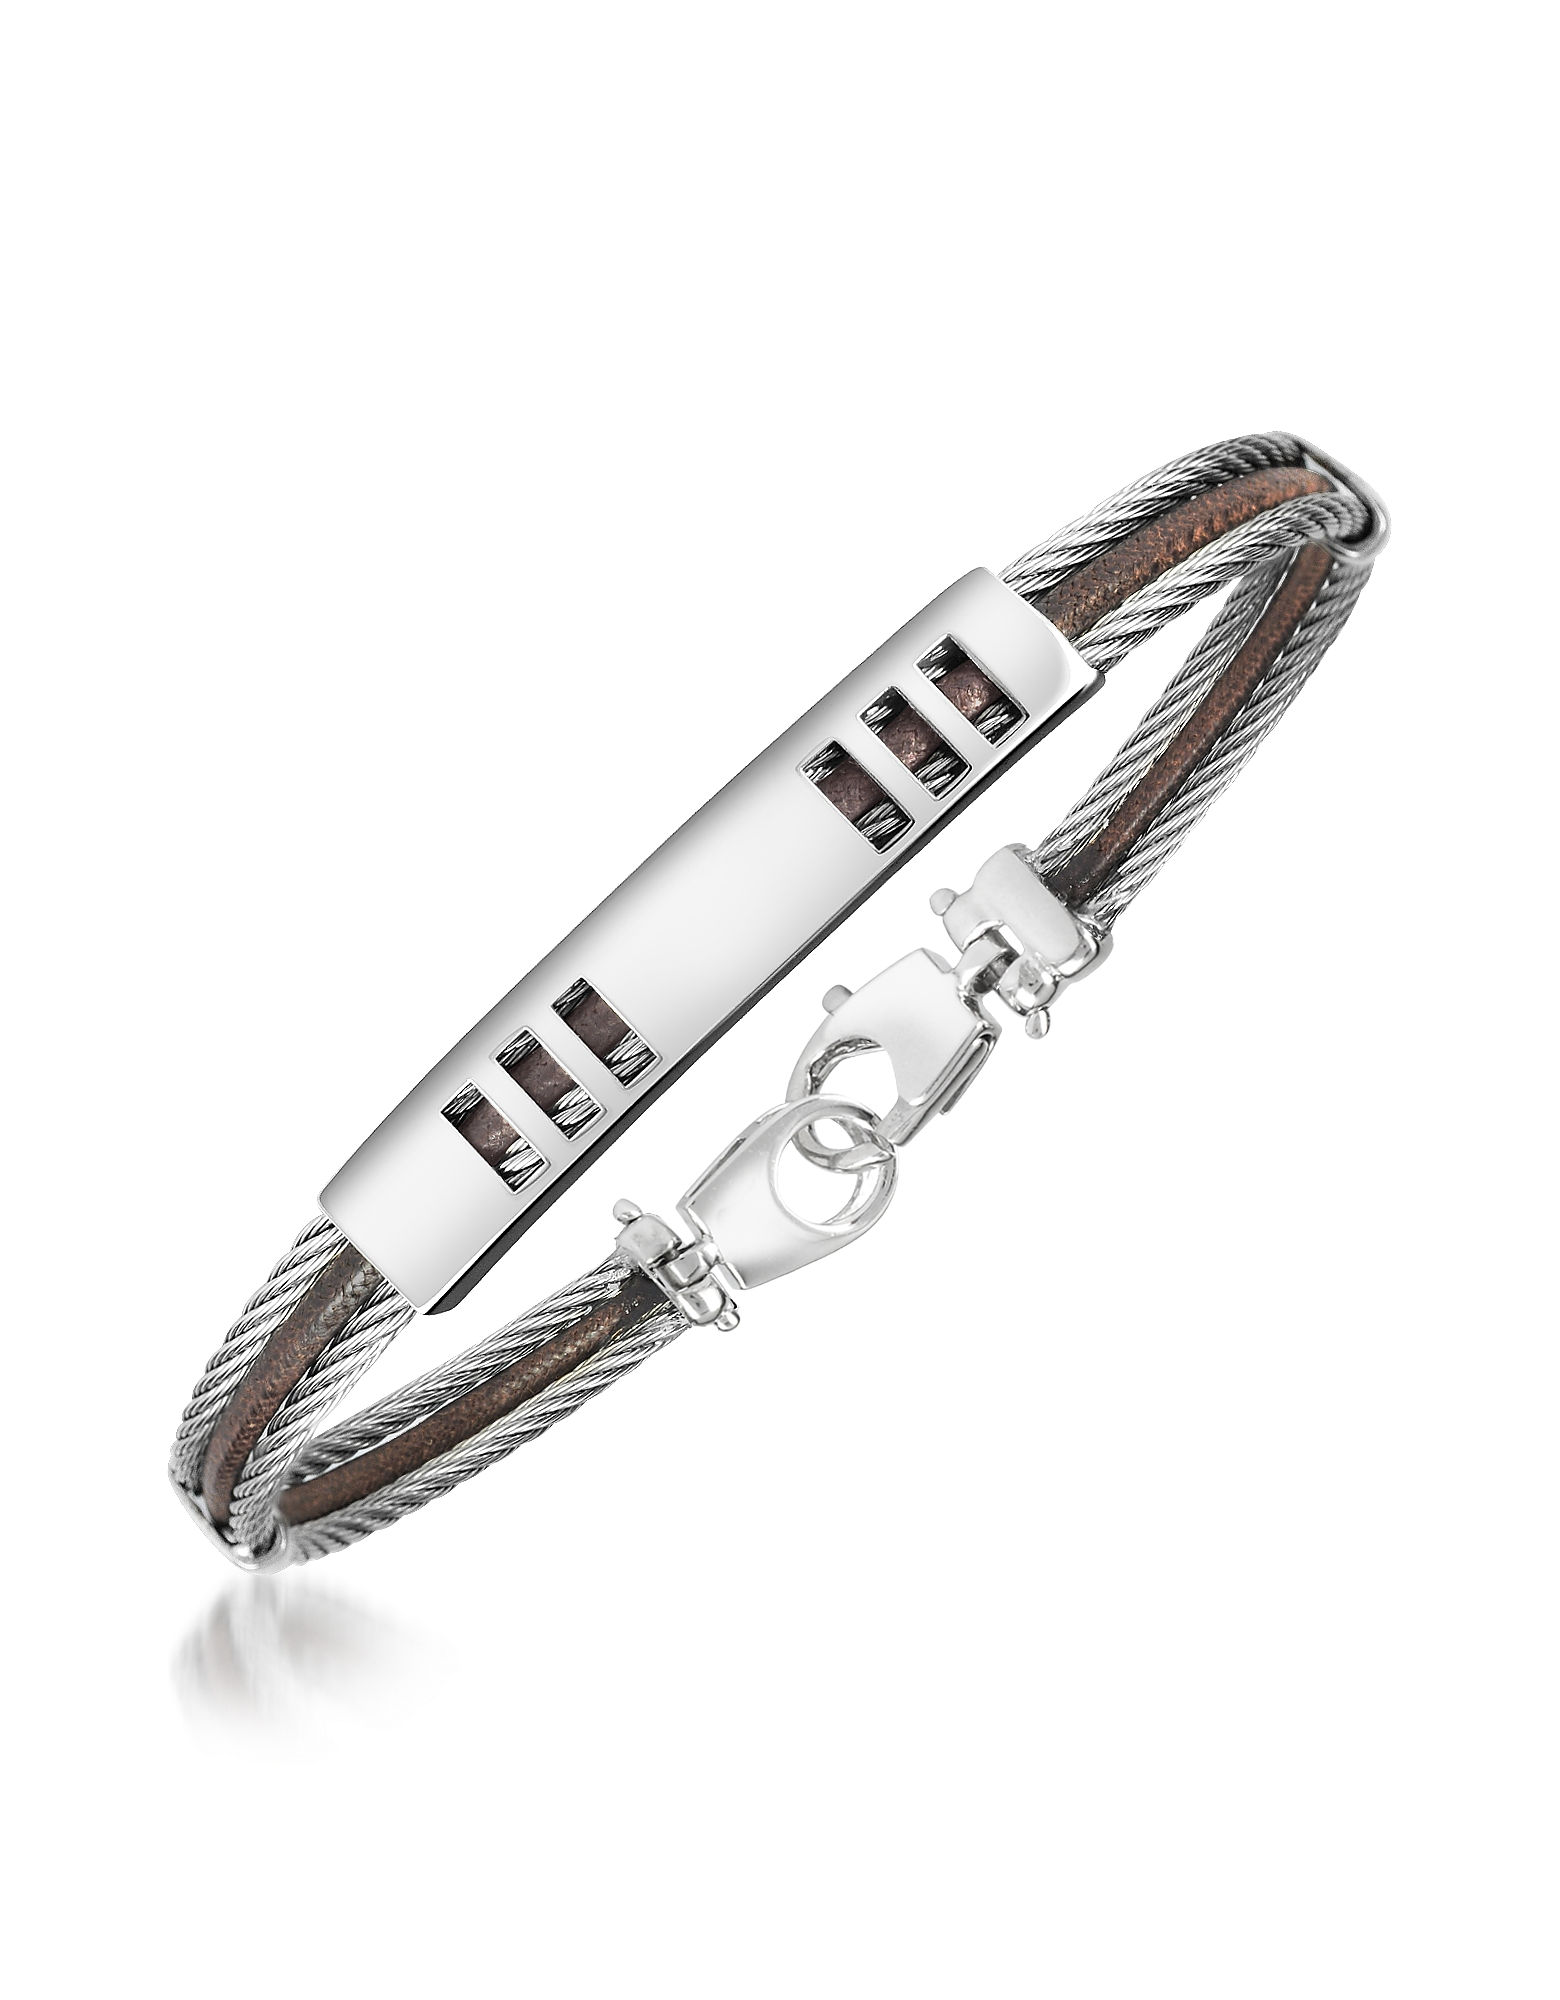 Forzieri Designer Men's Bracelets, Di Fulco - Stainless Steel Bracelet with Plaque